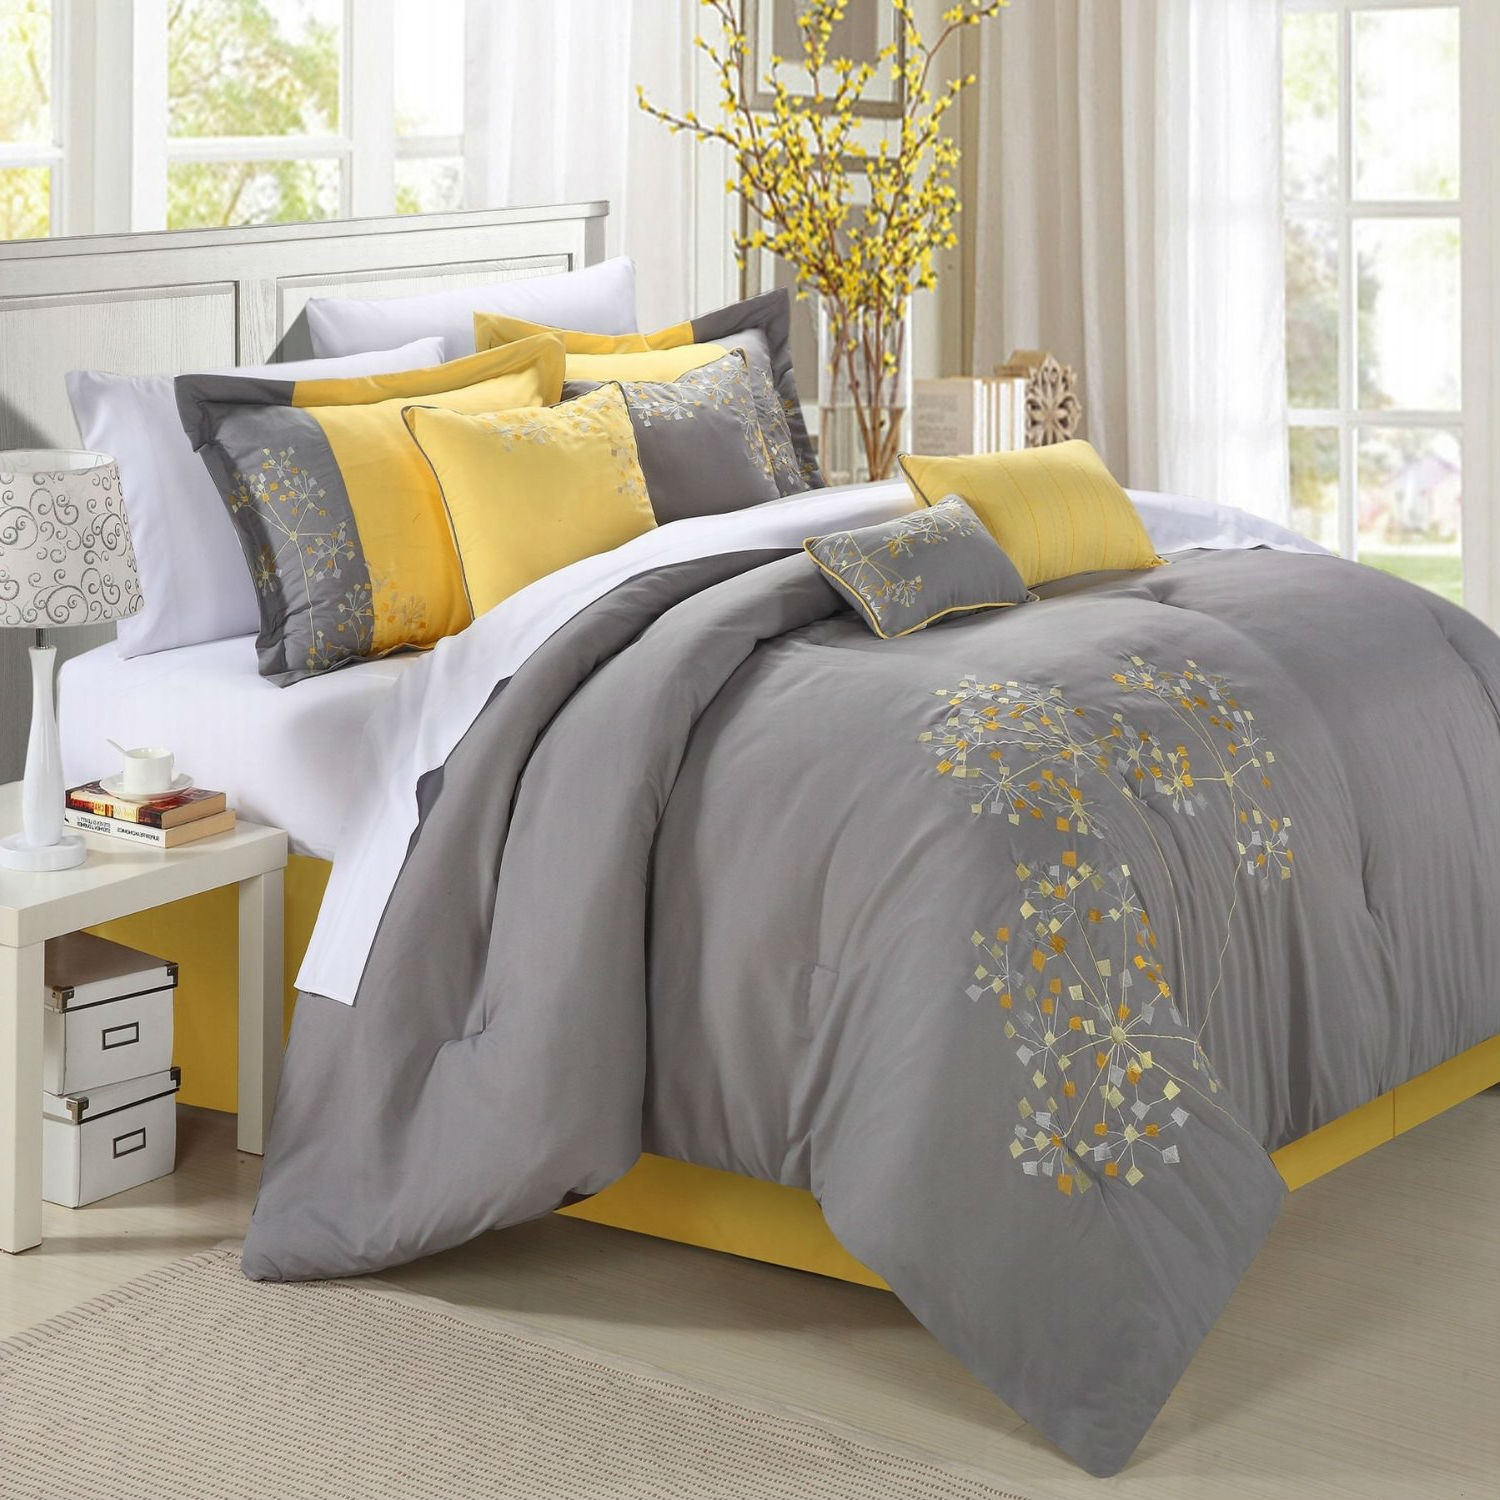 Gray And Yellow Bedroom: King Size 8-Piece Modern Yellow Grey Floral Comforter Set